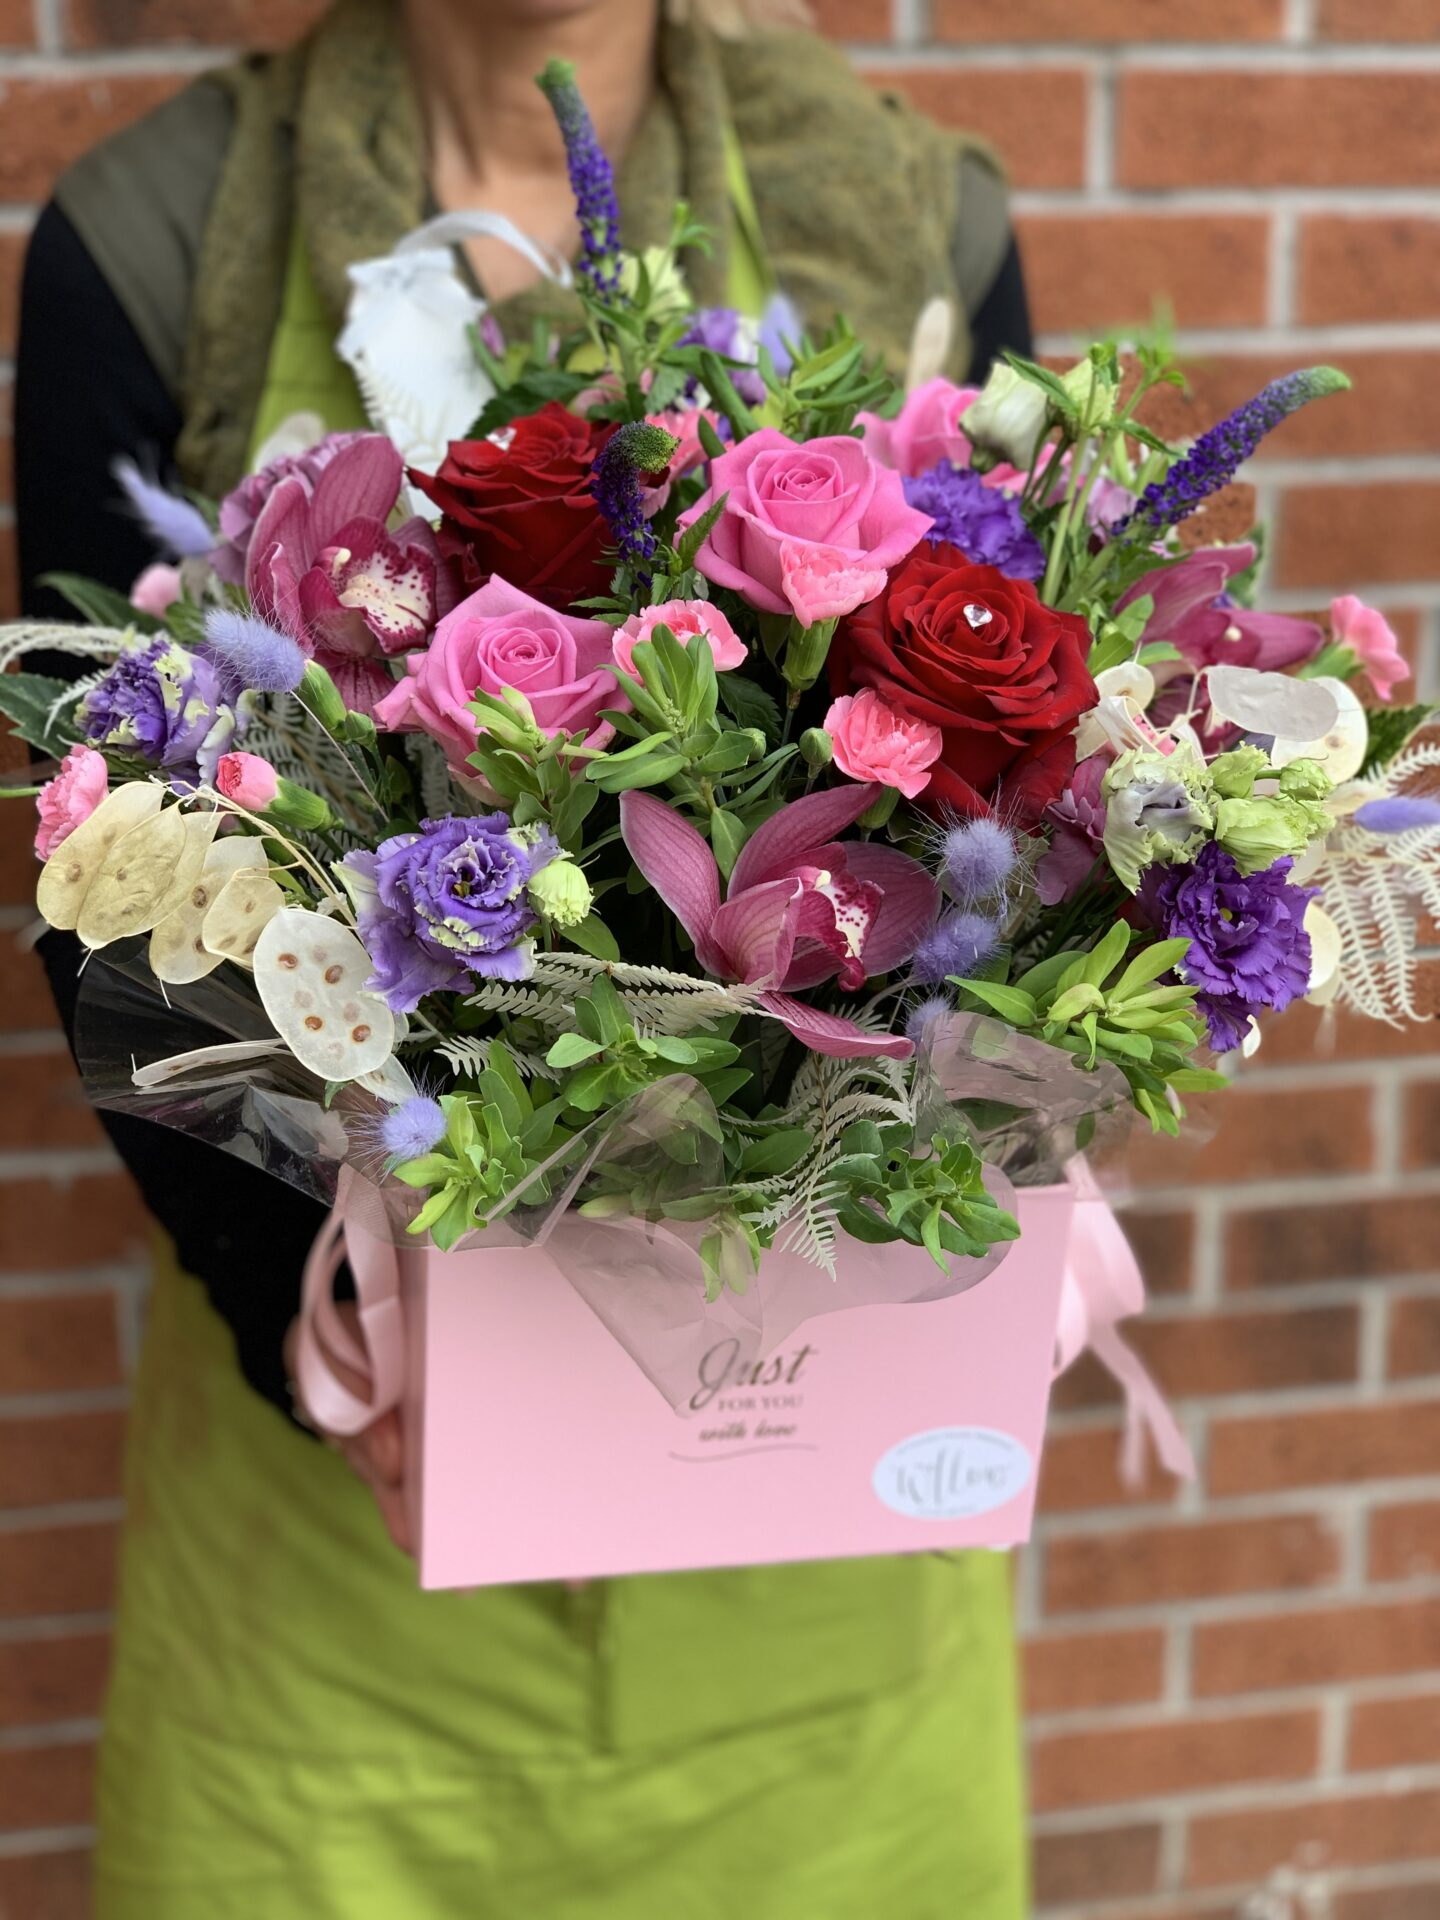 In this image, someone wearing a green apron is holding a bouquet in a bright pink box. The bouquet are a variety of pink flowers, some red flowers, some white flowers and even some deep purple ones.